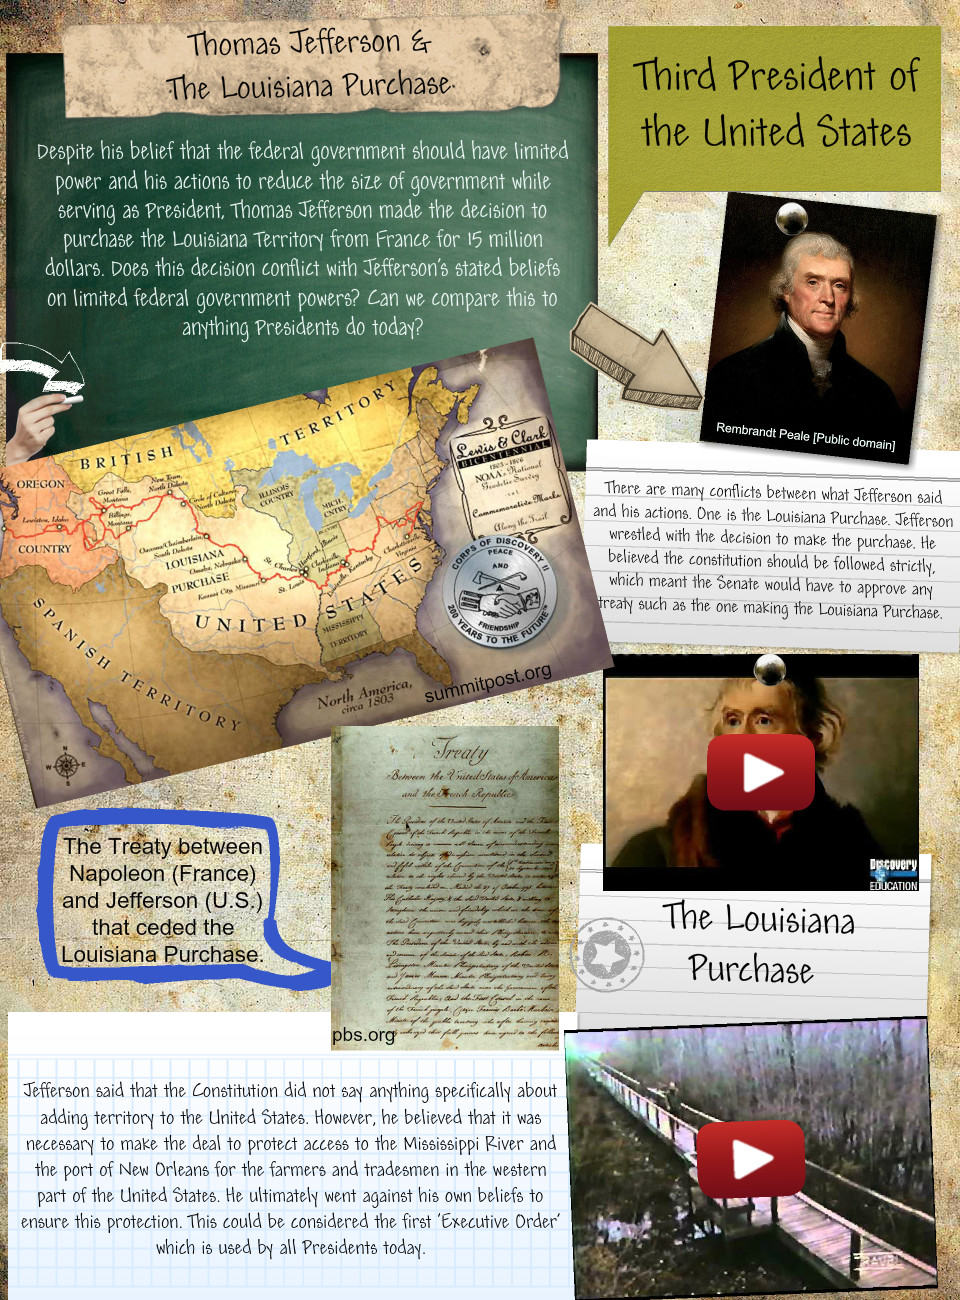 Thomas Jefferson & The Louisiana Purchase